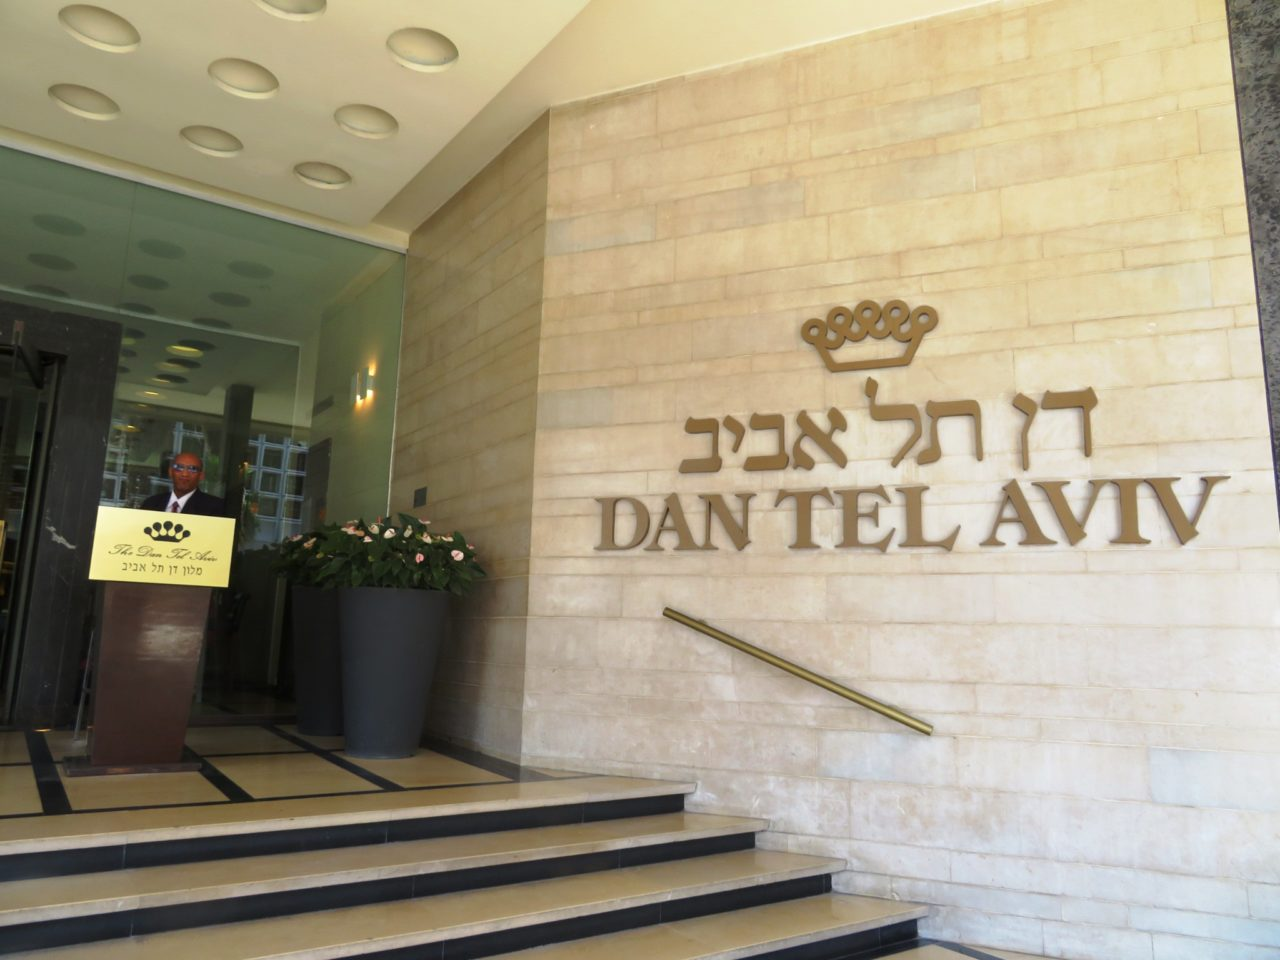 Vacationing in Israel ... The Dan Tel Aviv Hotel